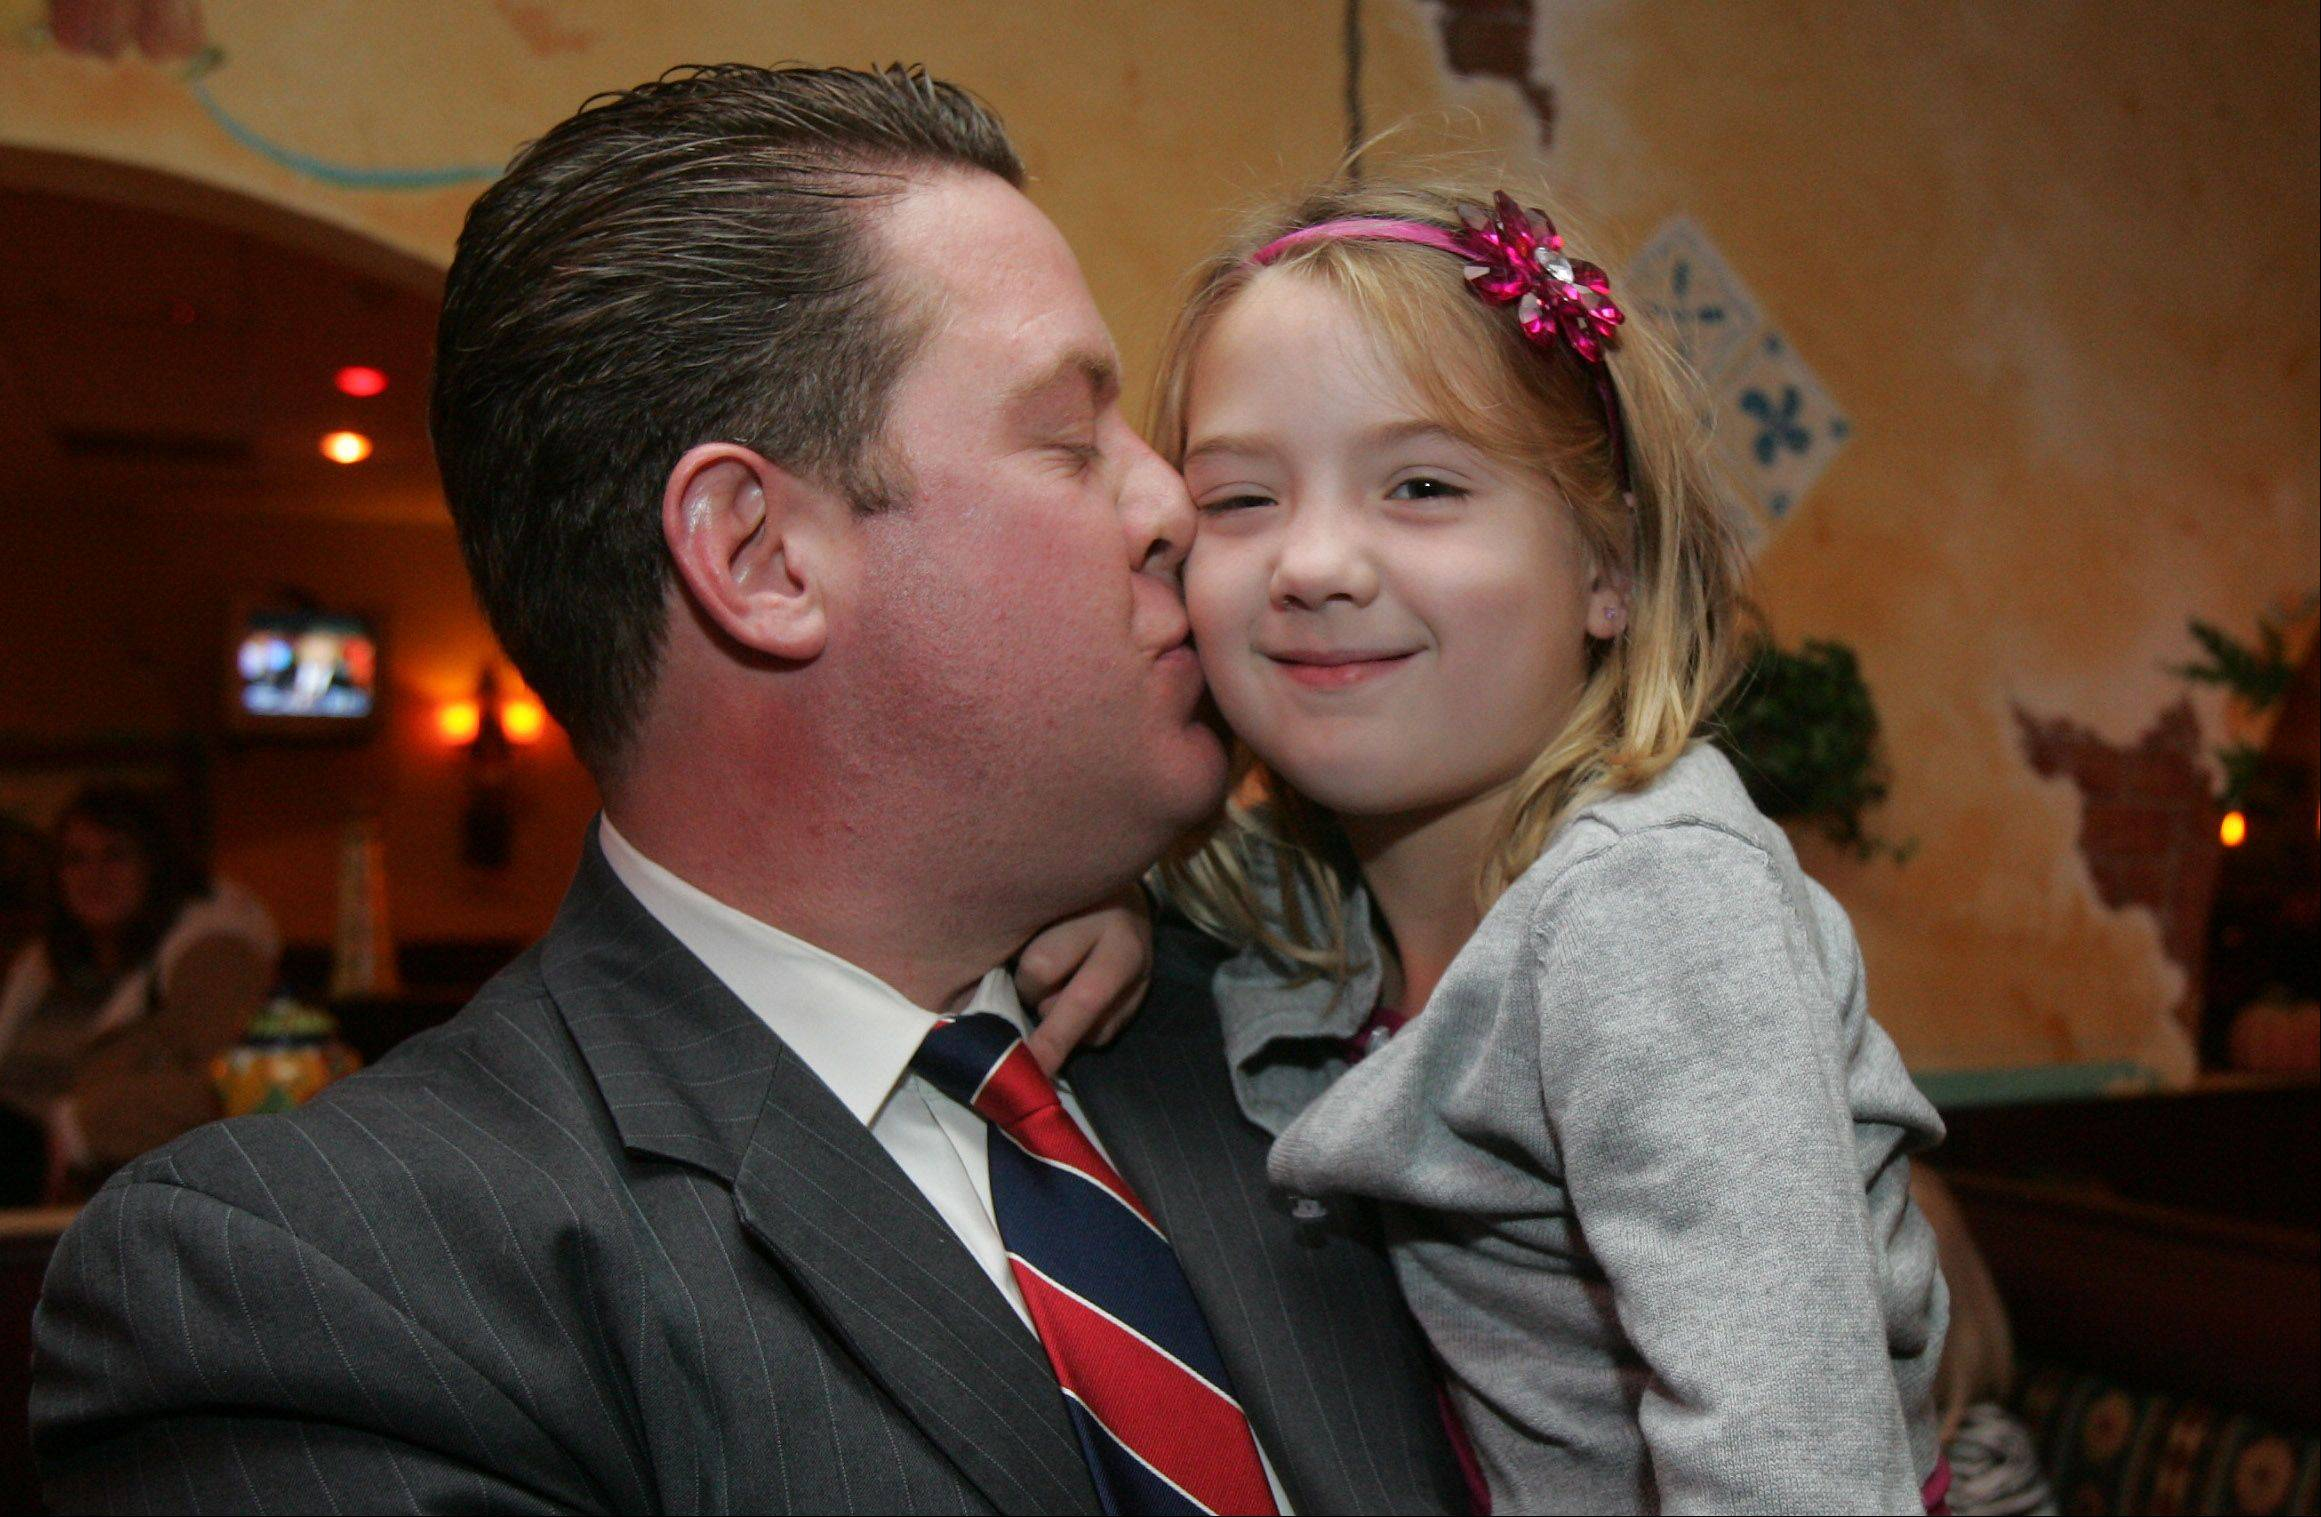 Republican candidate Mike Nerheim kisses his daughter, Grace, 5, as he monitors election results at Tacos El Norte in Gurnee Tuesday in the Lake County State's Attorney race. Nerheim won the election.